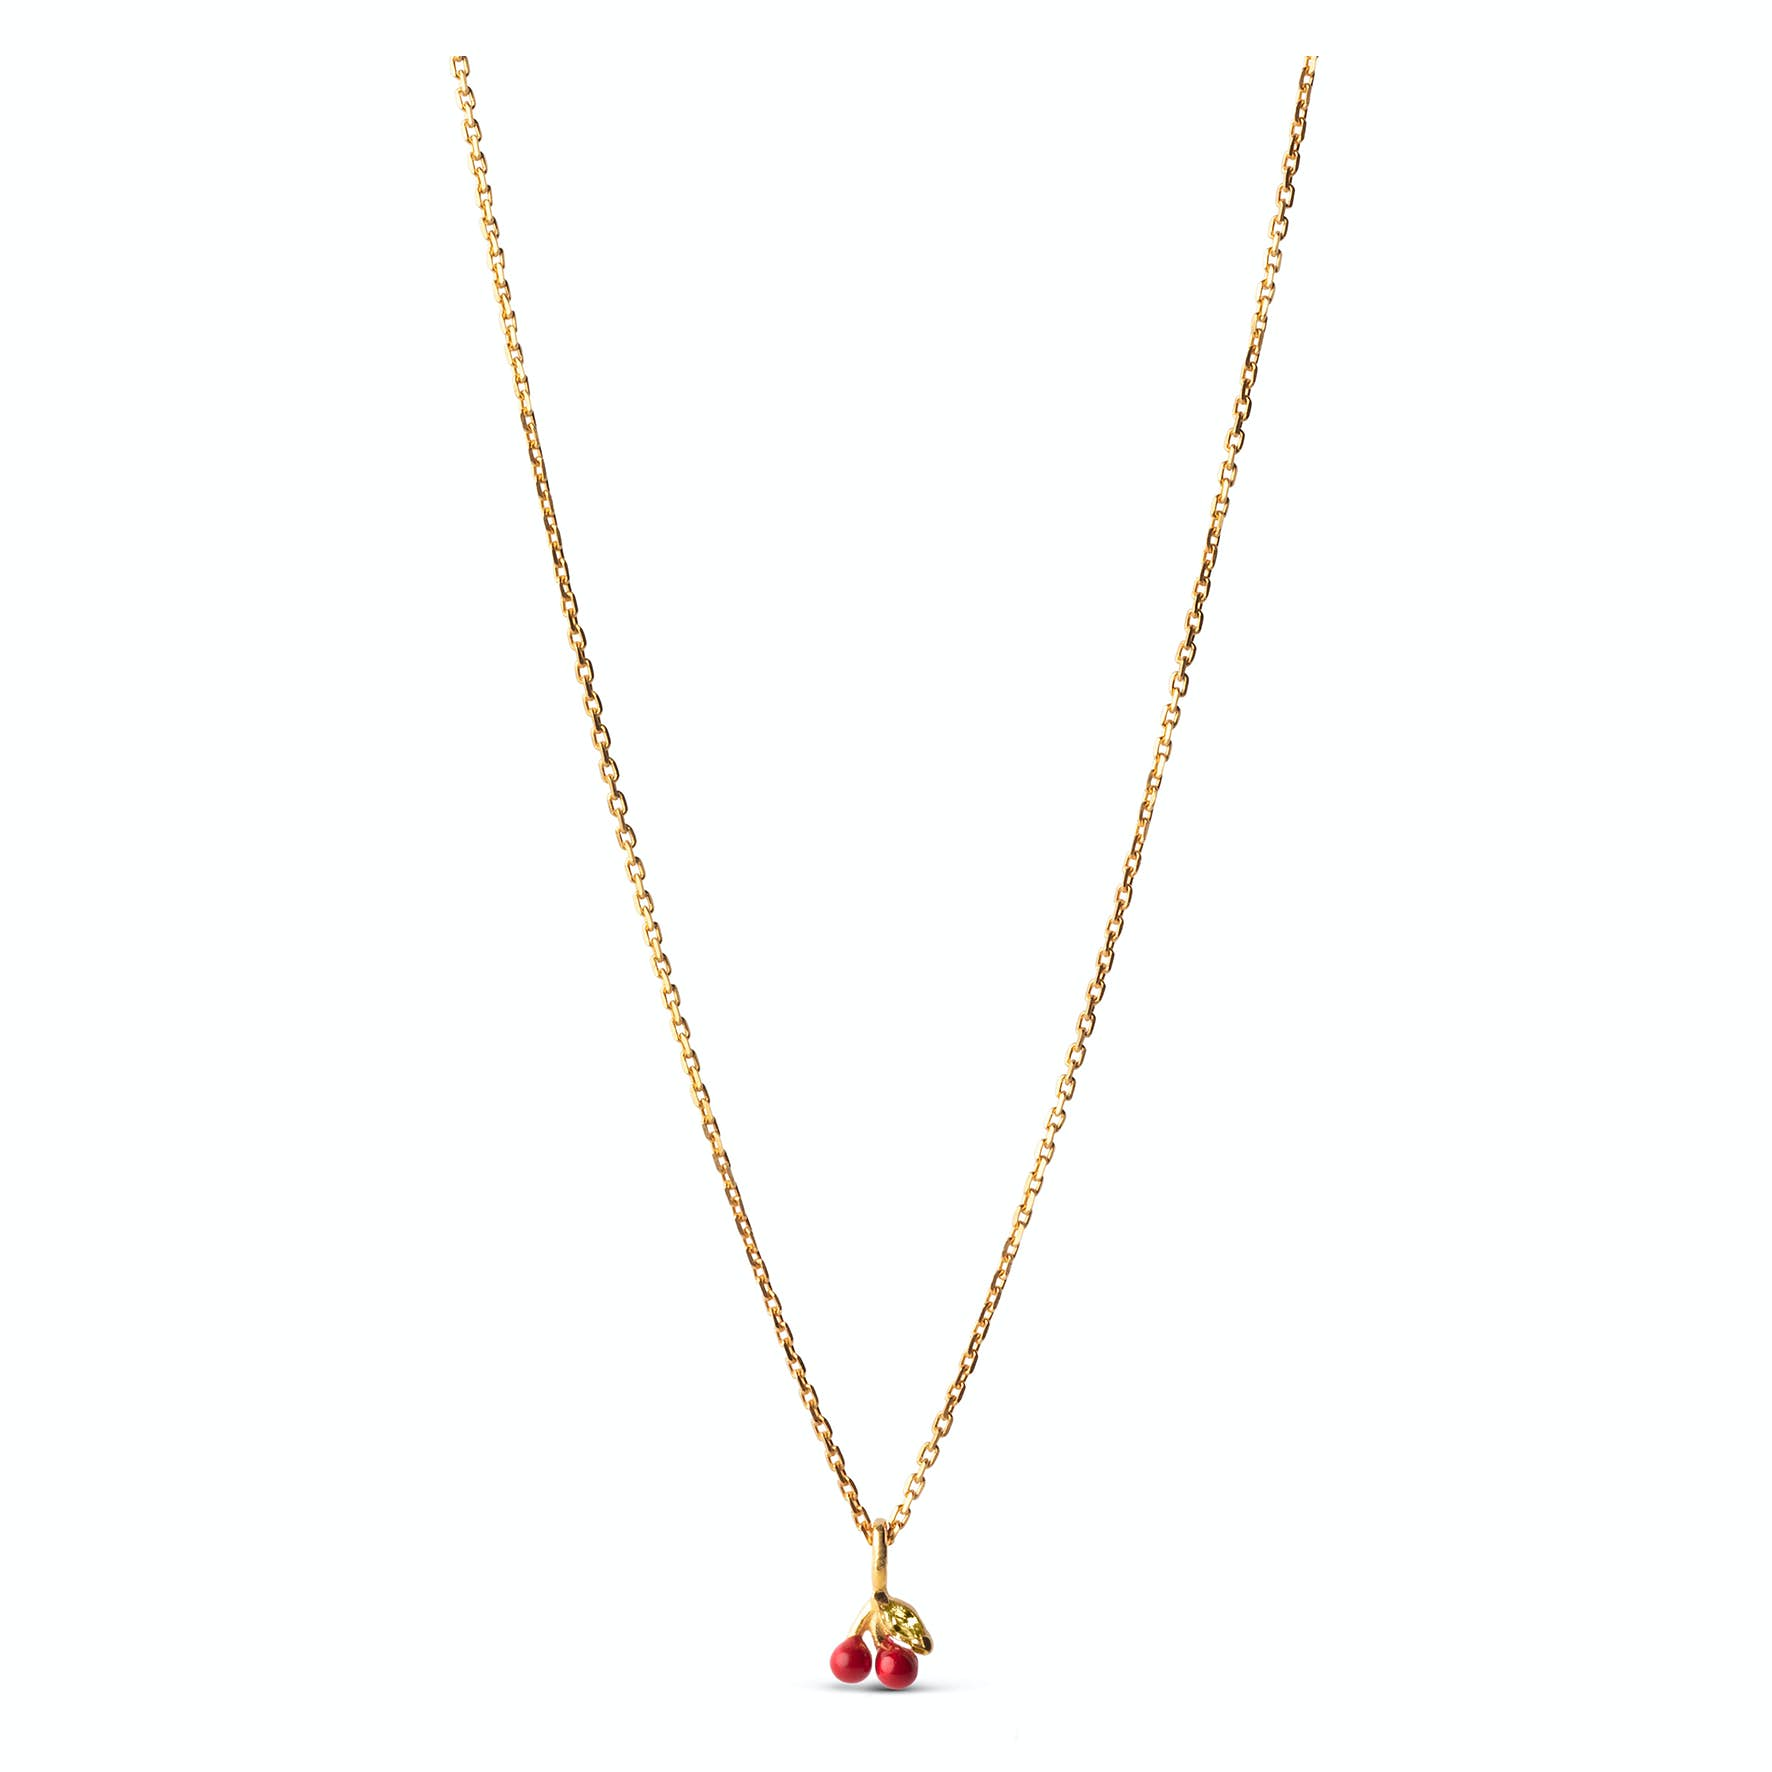 Cherry Necklace Red from Enamel Copenhagen in Goldplated-Silver Sterling 925